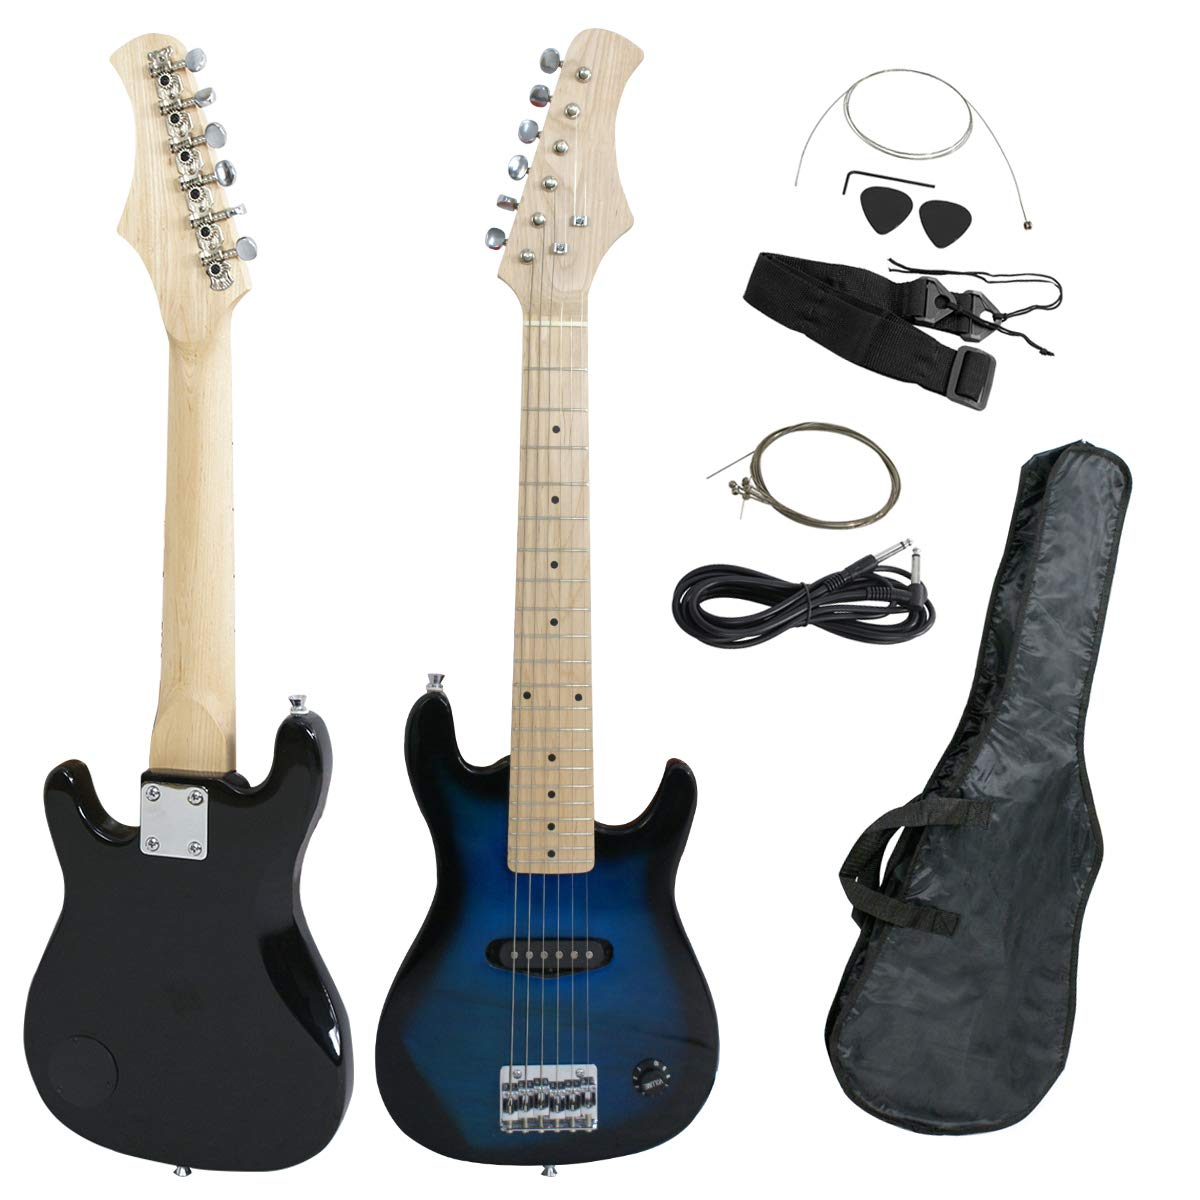 Smartxchoices 30'' Mini Kids Blue Electric Guitar Bundle Kit Bass Guitar for Beginners with Gig Bag,Cable,Strap,Picks Combo Package Accessories Children Holiday Gifts (Blue, No Amp)